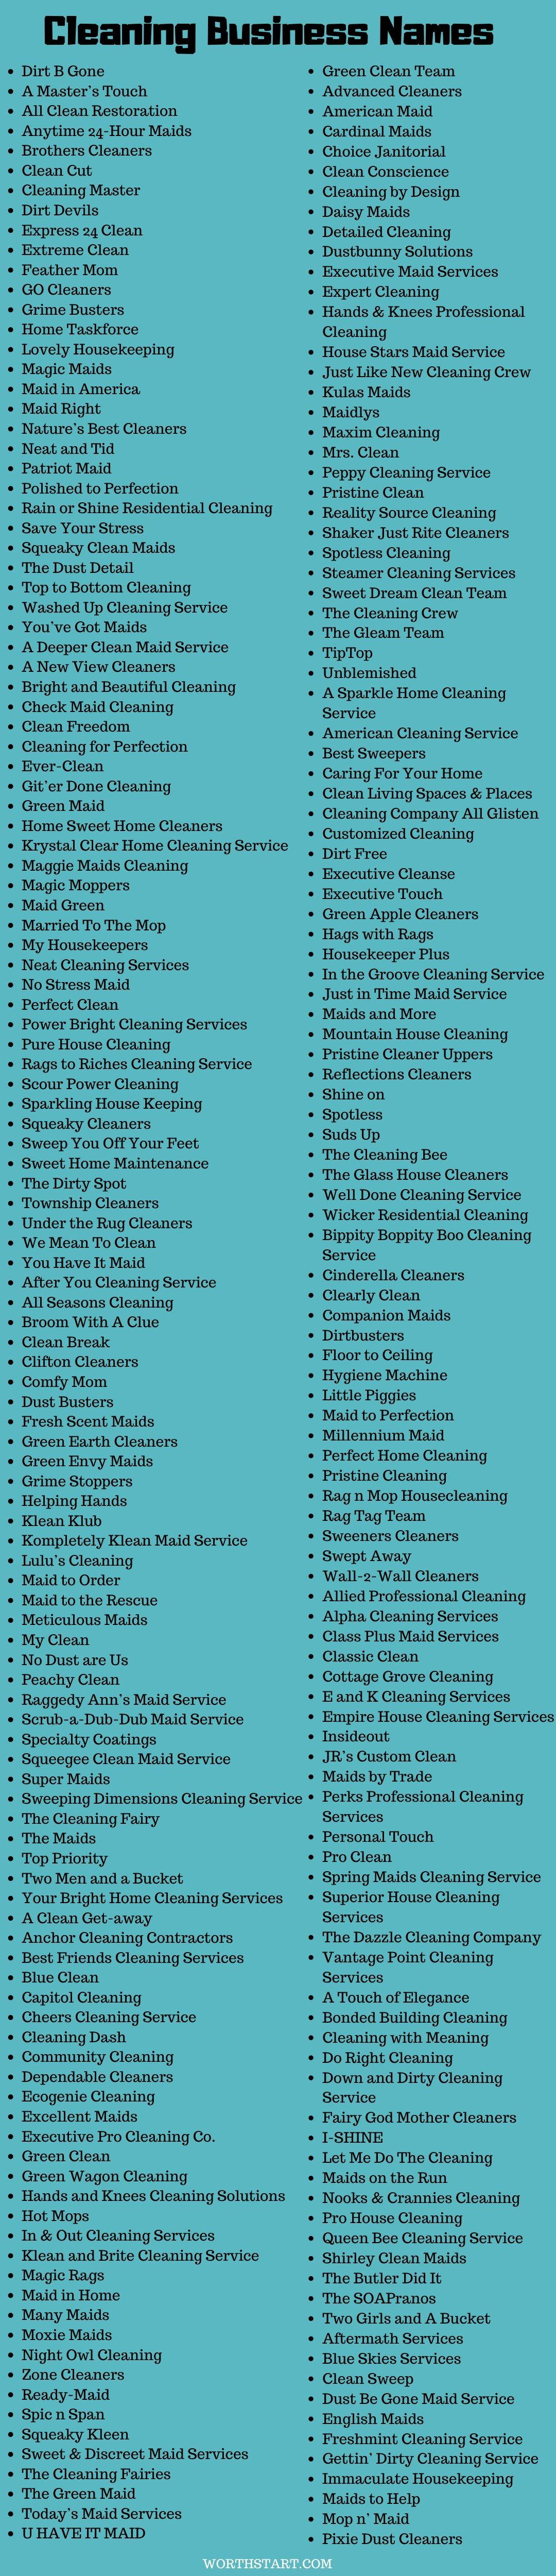 Cleaning Business Names 400 Best Cleaning Company Names